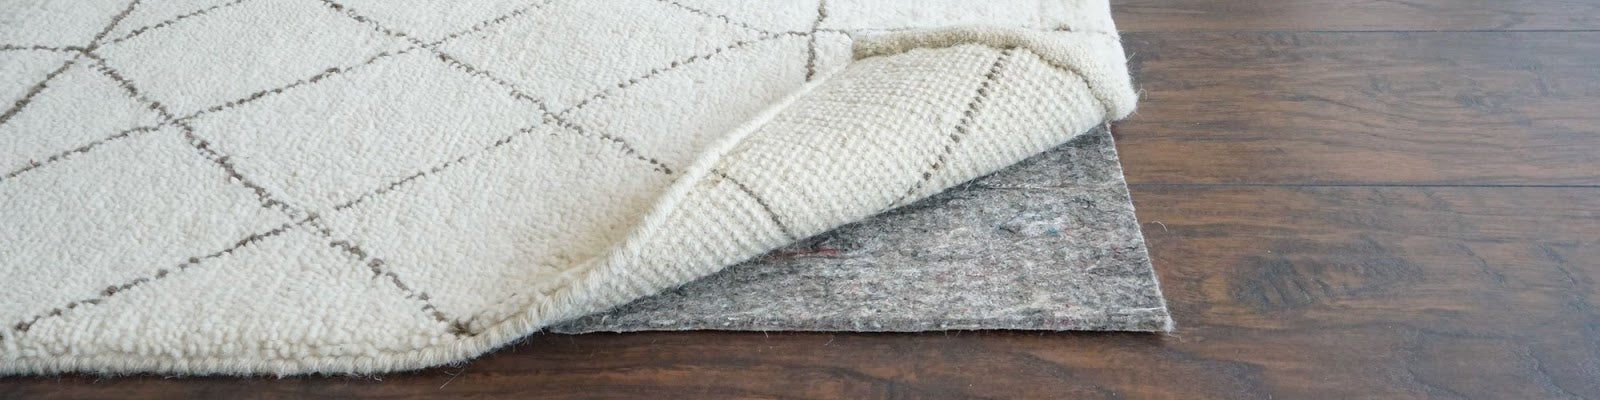 Felt and Natural Rubber Rug Pads